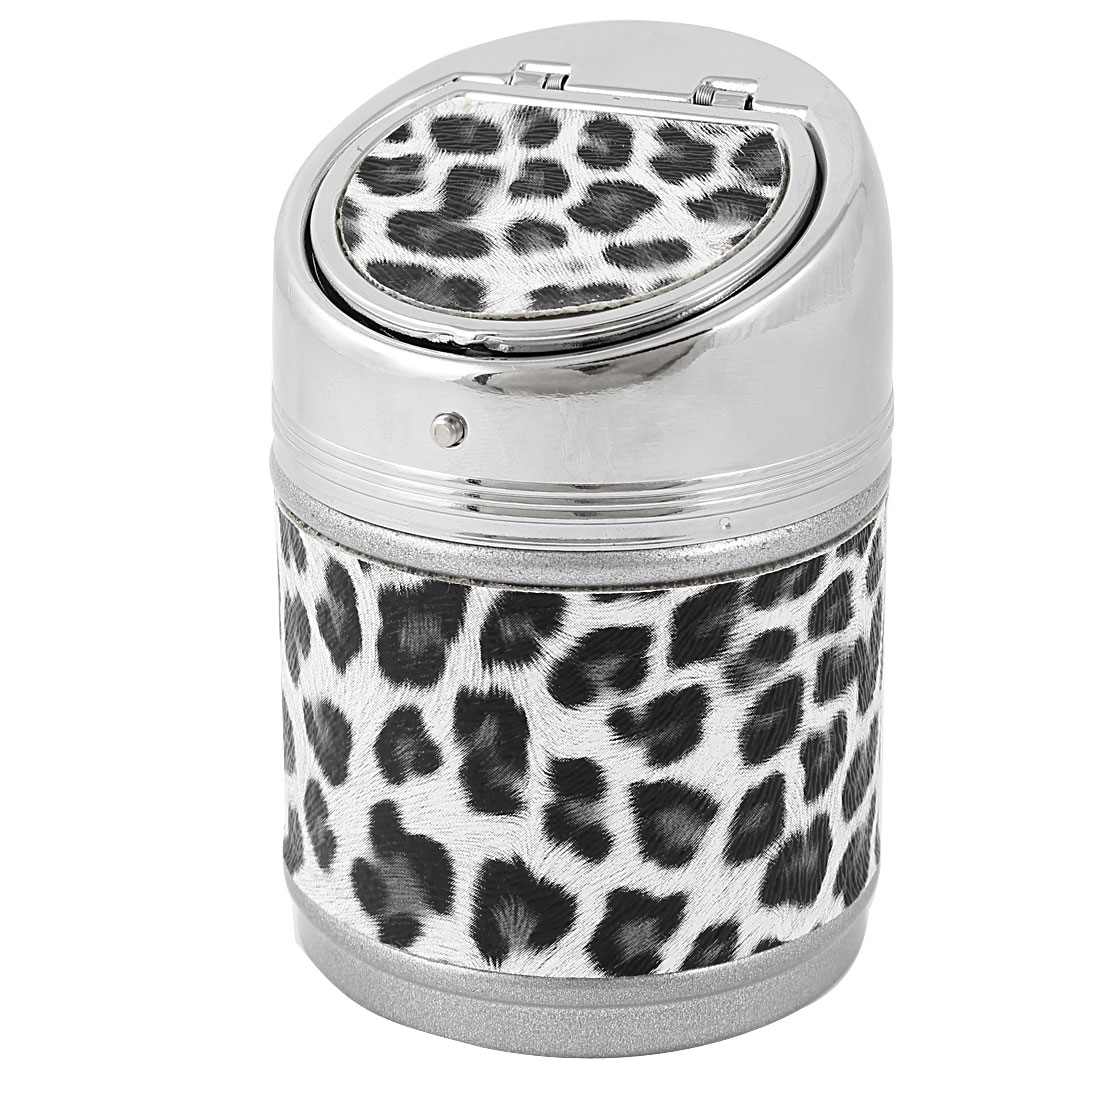 Household Leopard Pattern Cylinder Shaped Automatic Flap Lid Smoke Cigarette Tobacco Ash Holder Container Ashtray Black White